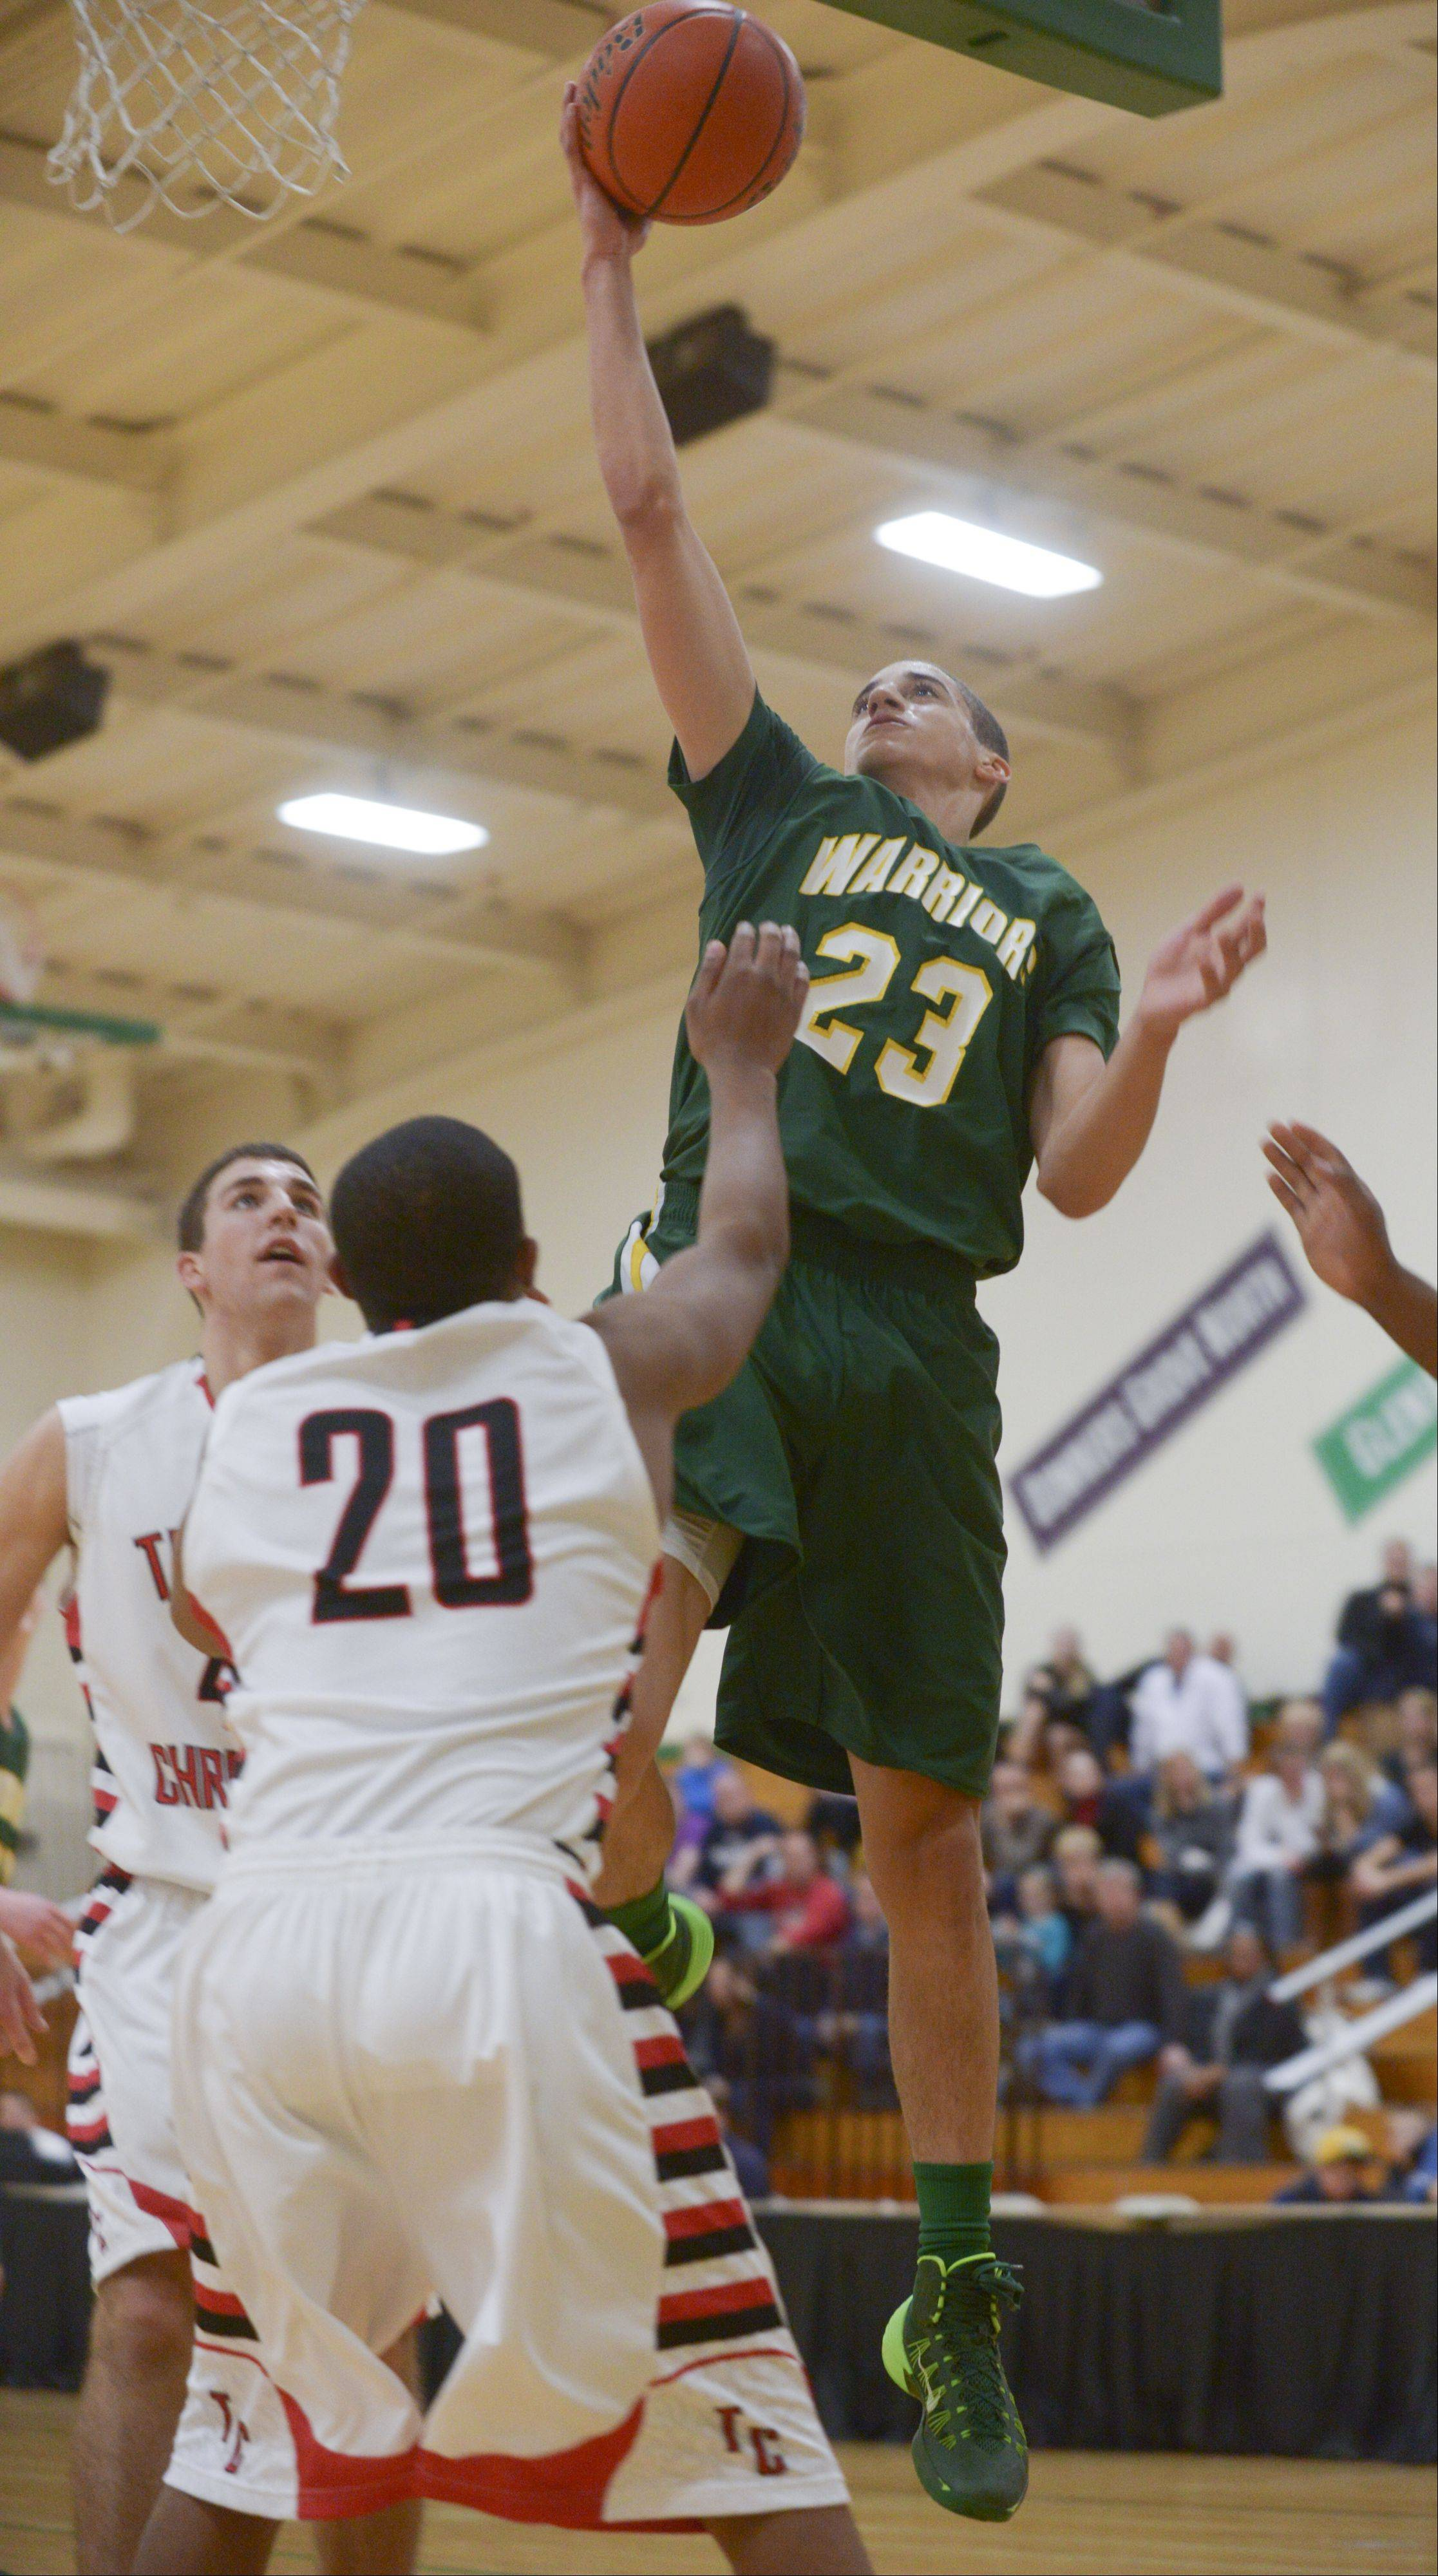 Waubonsie Valley's Jay DeHaan goes up for a shot getting past Timothy Christian's Joe Bishop during the Jack Tosh Holiday Classic at York High School Monday.